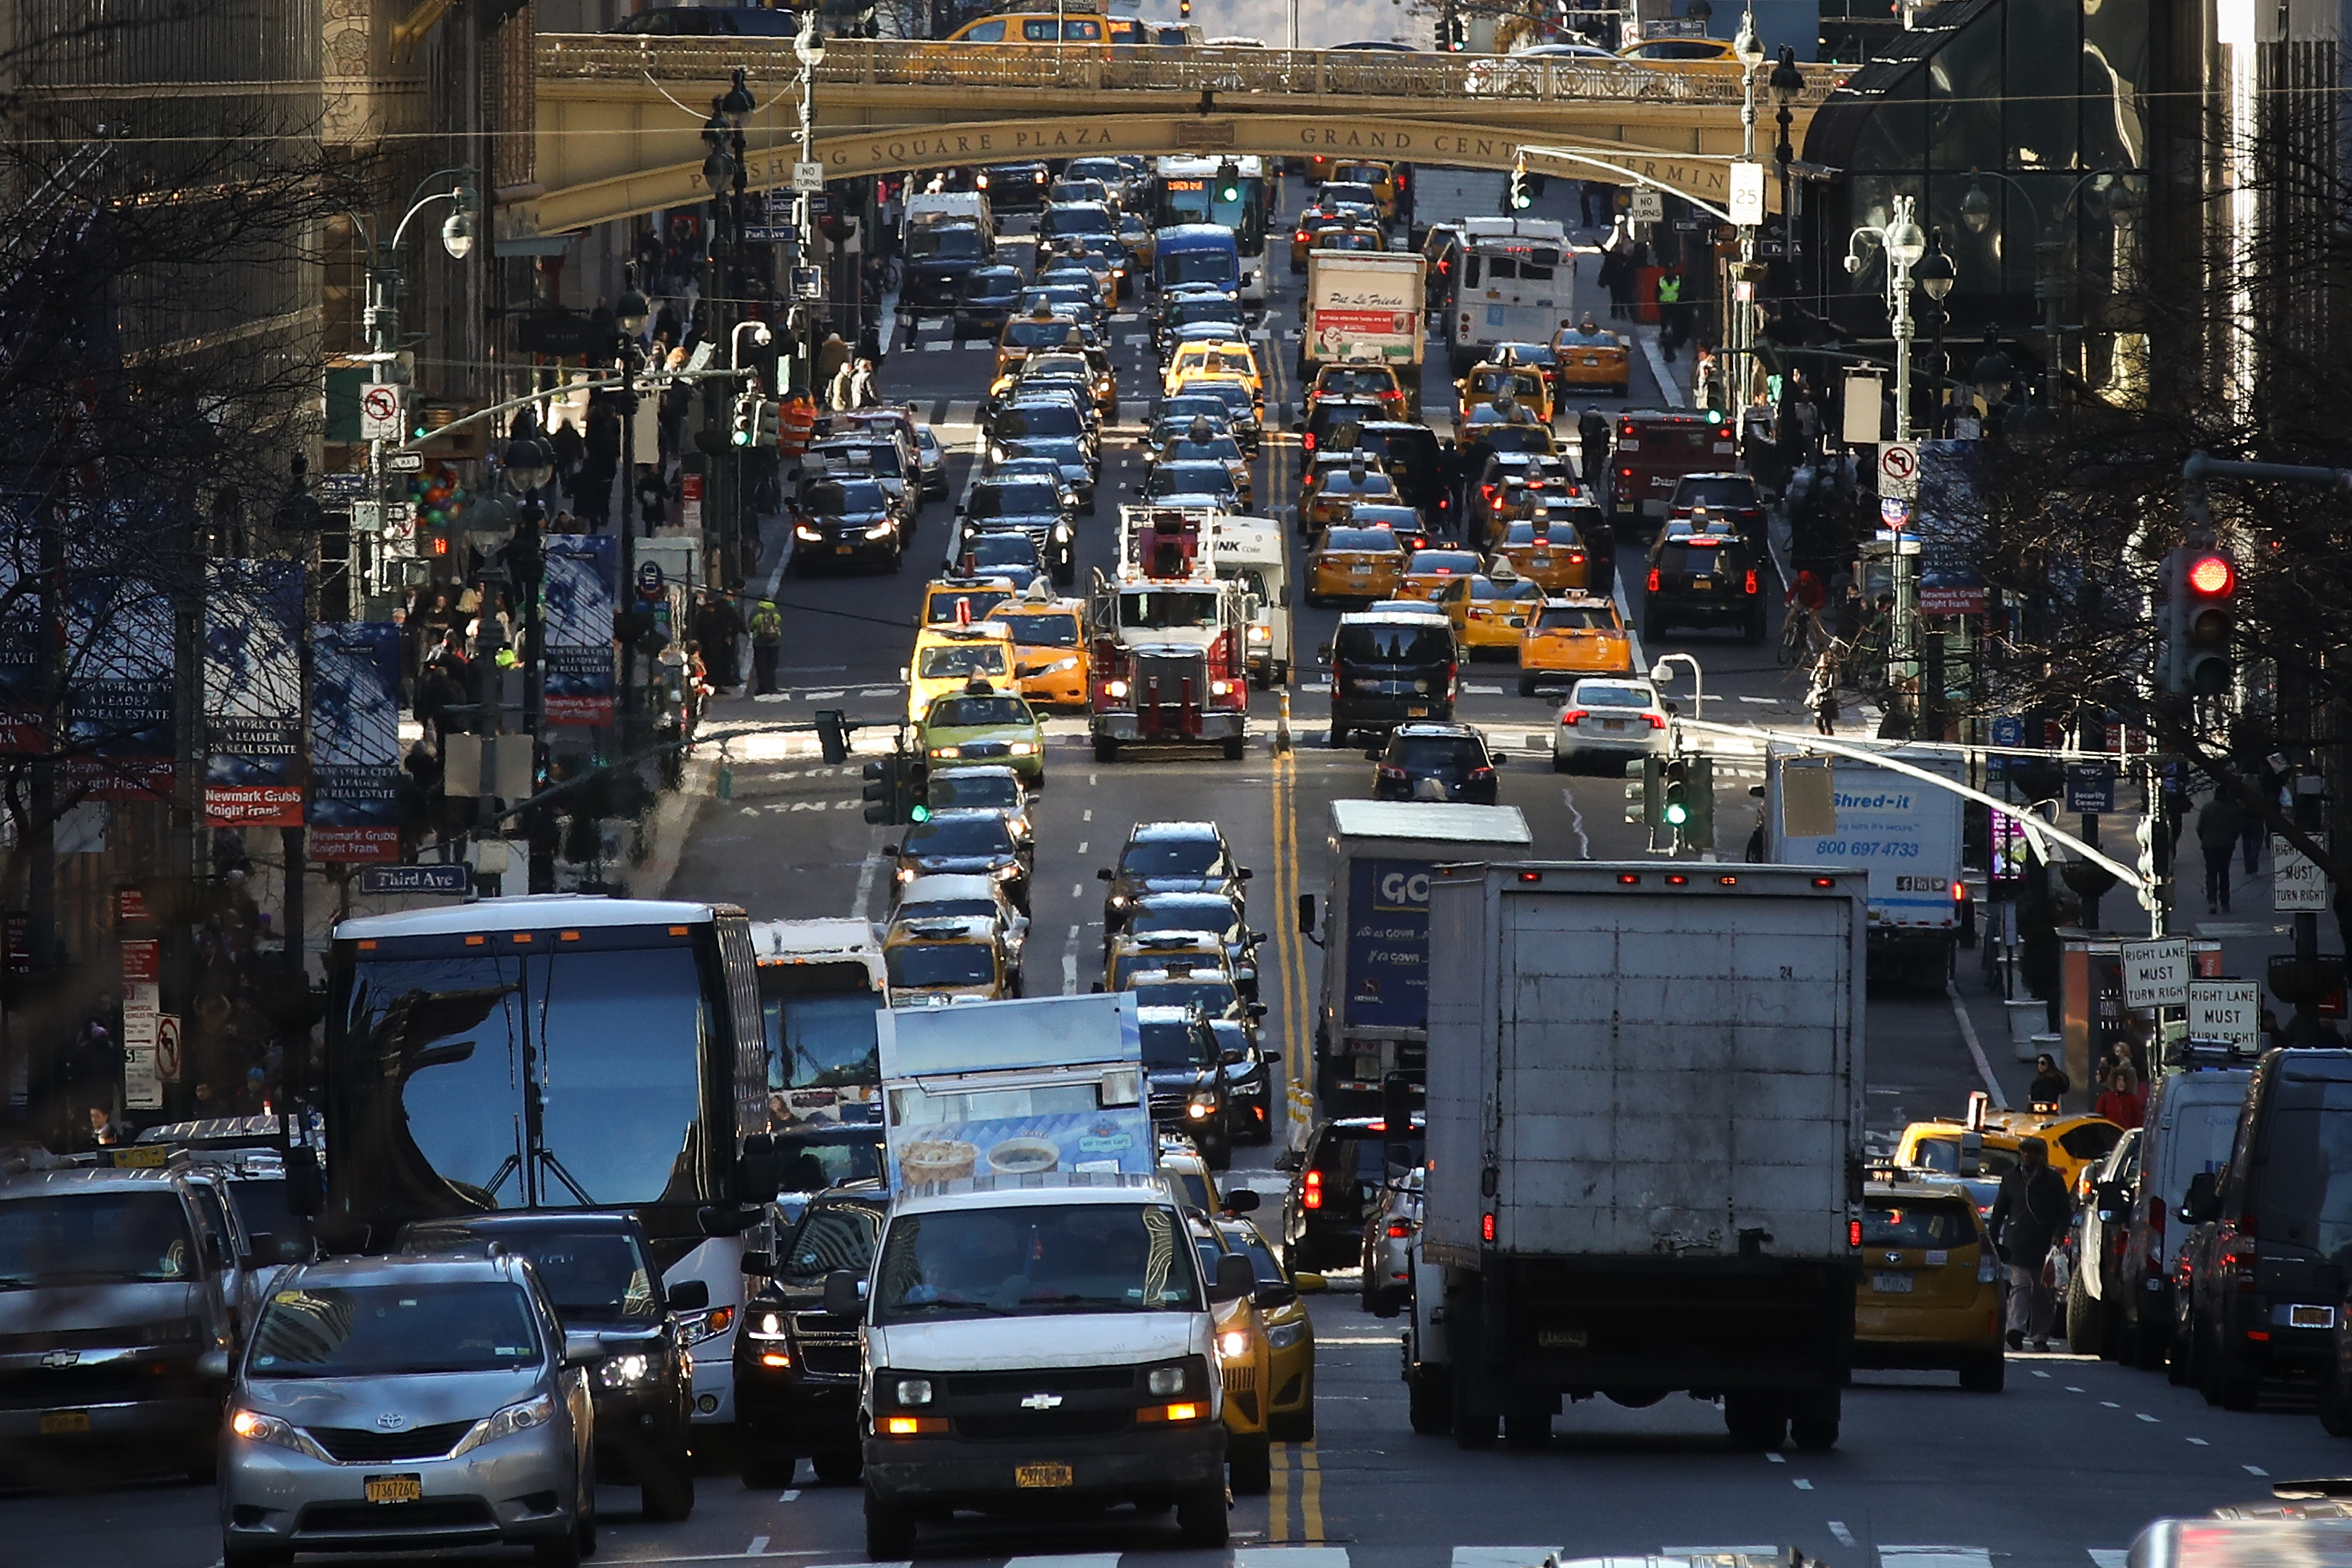 Traffic in a major city.